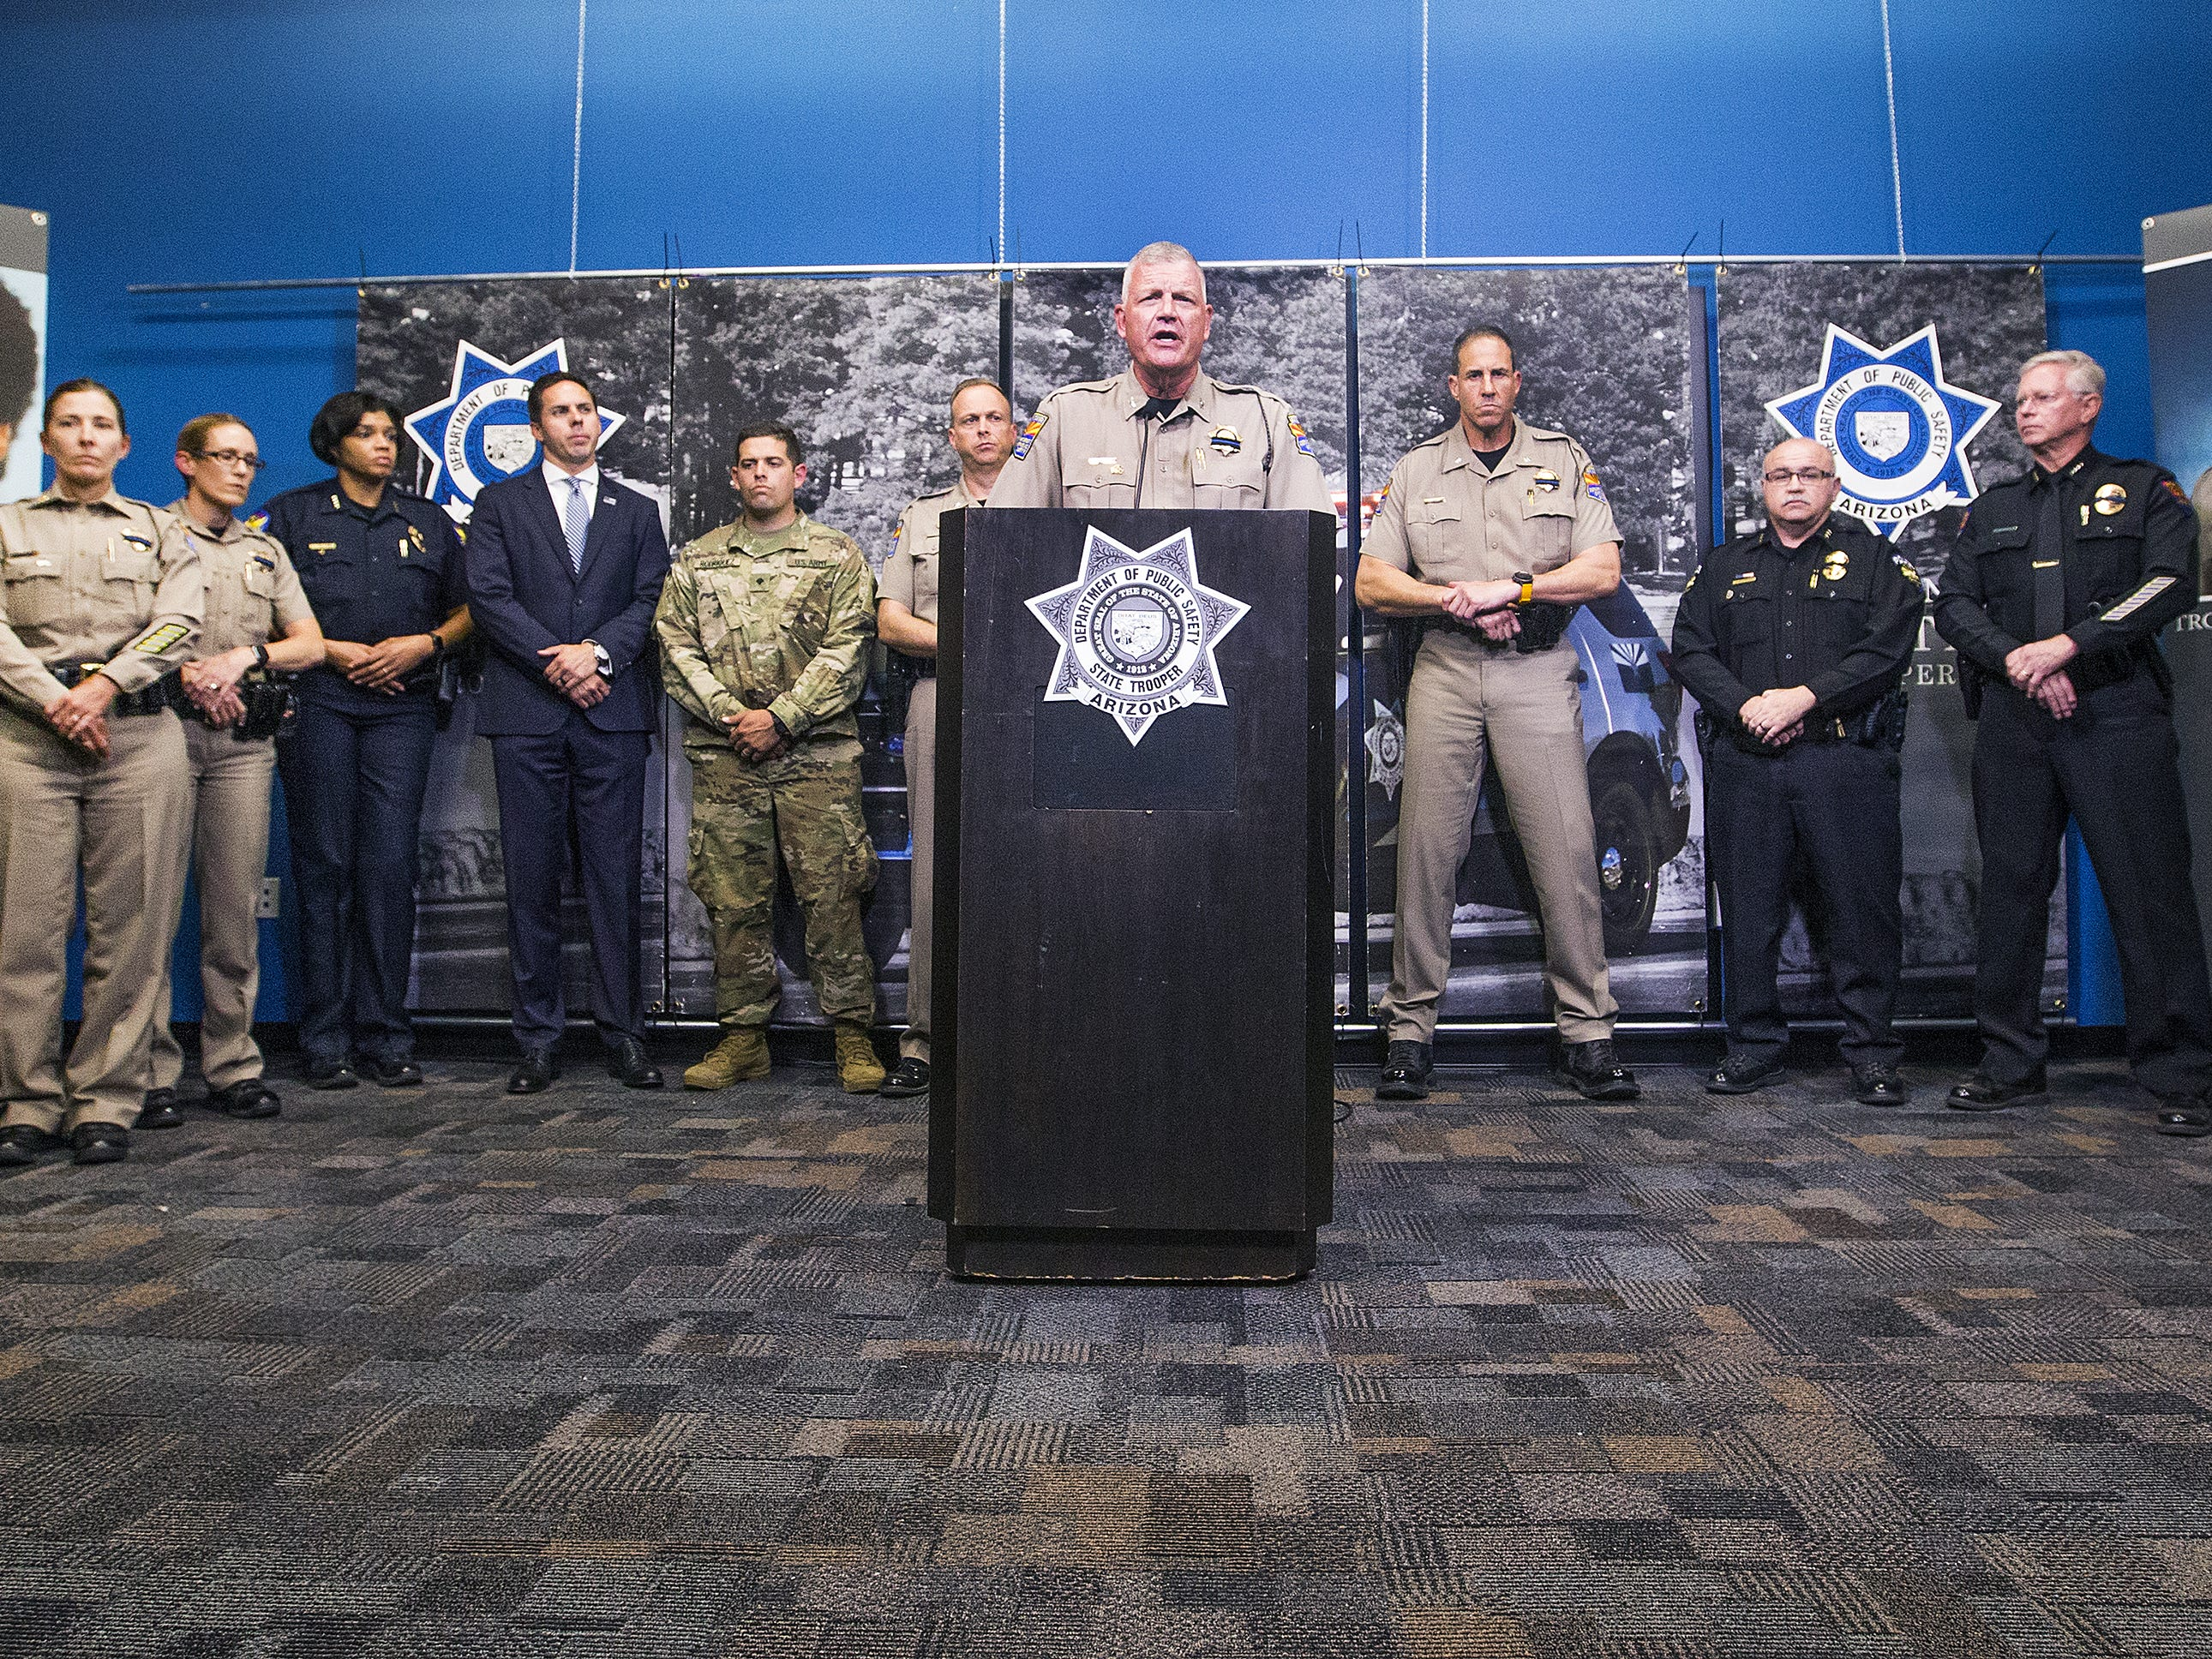 Col. Frank Milstead, director of the Arizona Department of Public Safety in Phoenix, answers questions from the media during a press conference, Thursday, July 26, 2018, regarding the death of DPS trooper Tyler Edenhofer.